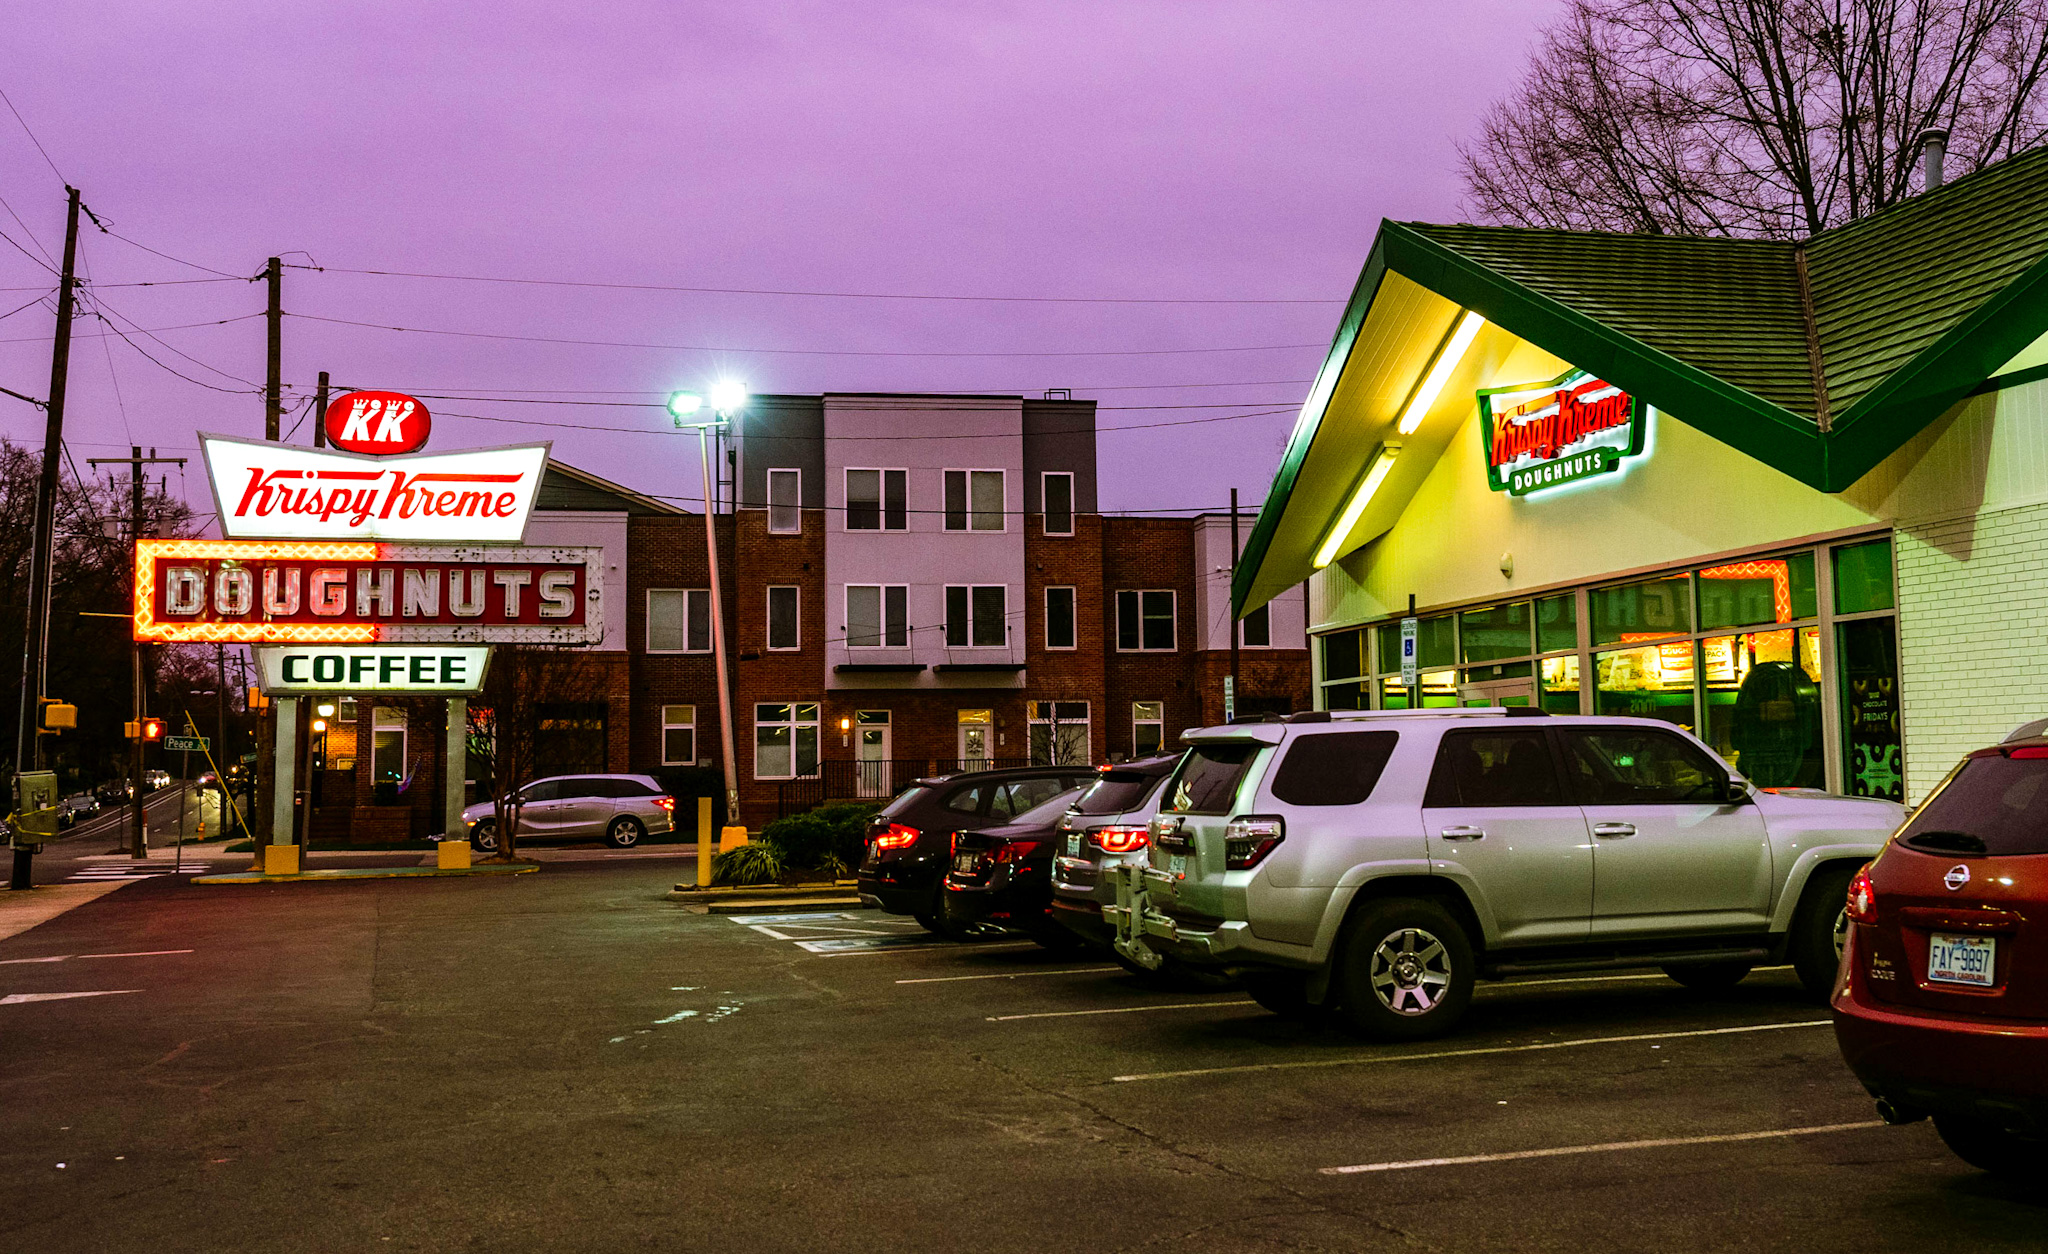 Krispy Kreme – the Original